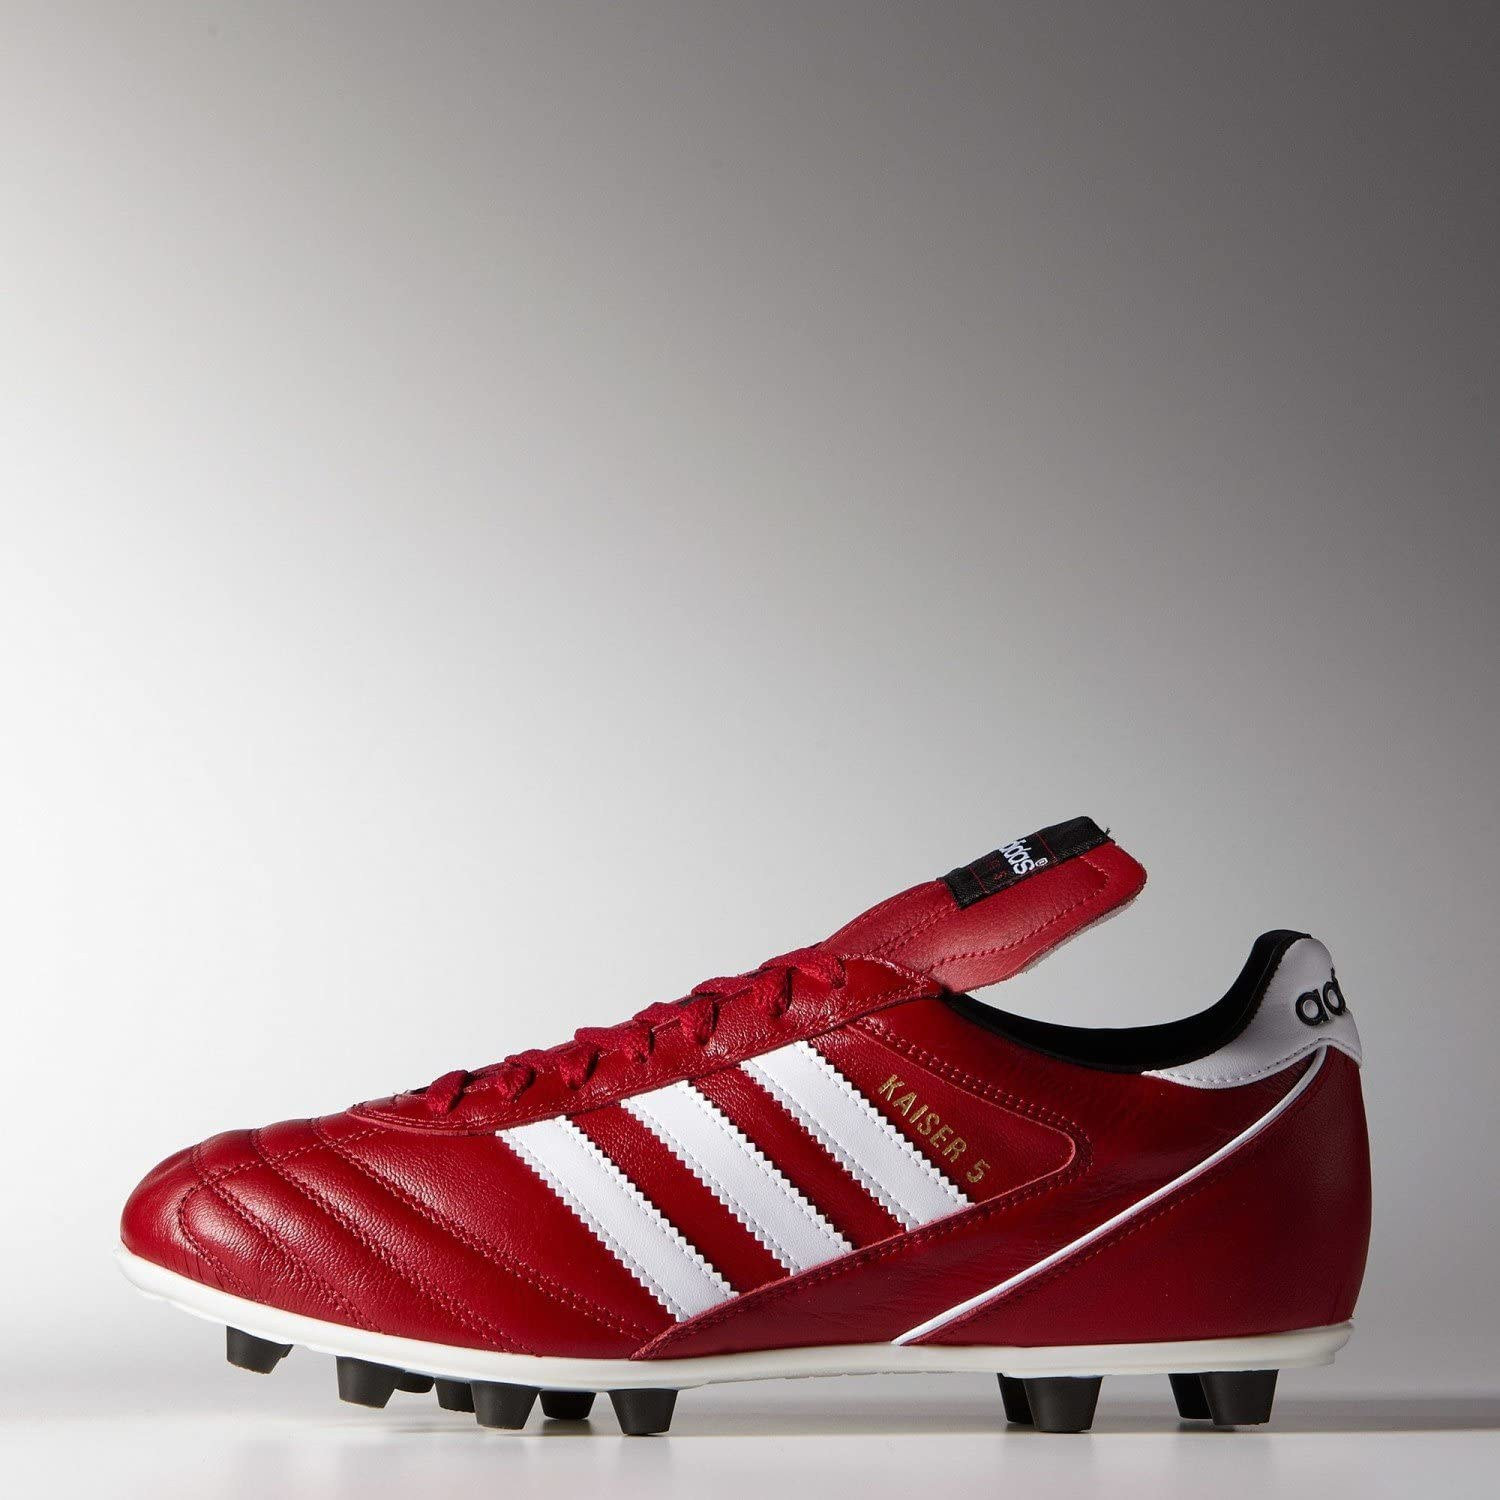 adidas Kaiser Moule Rouge Chaussures Football Moulées